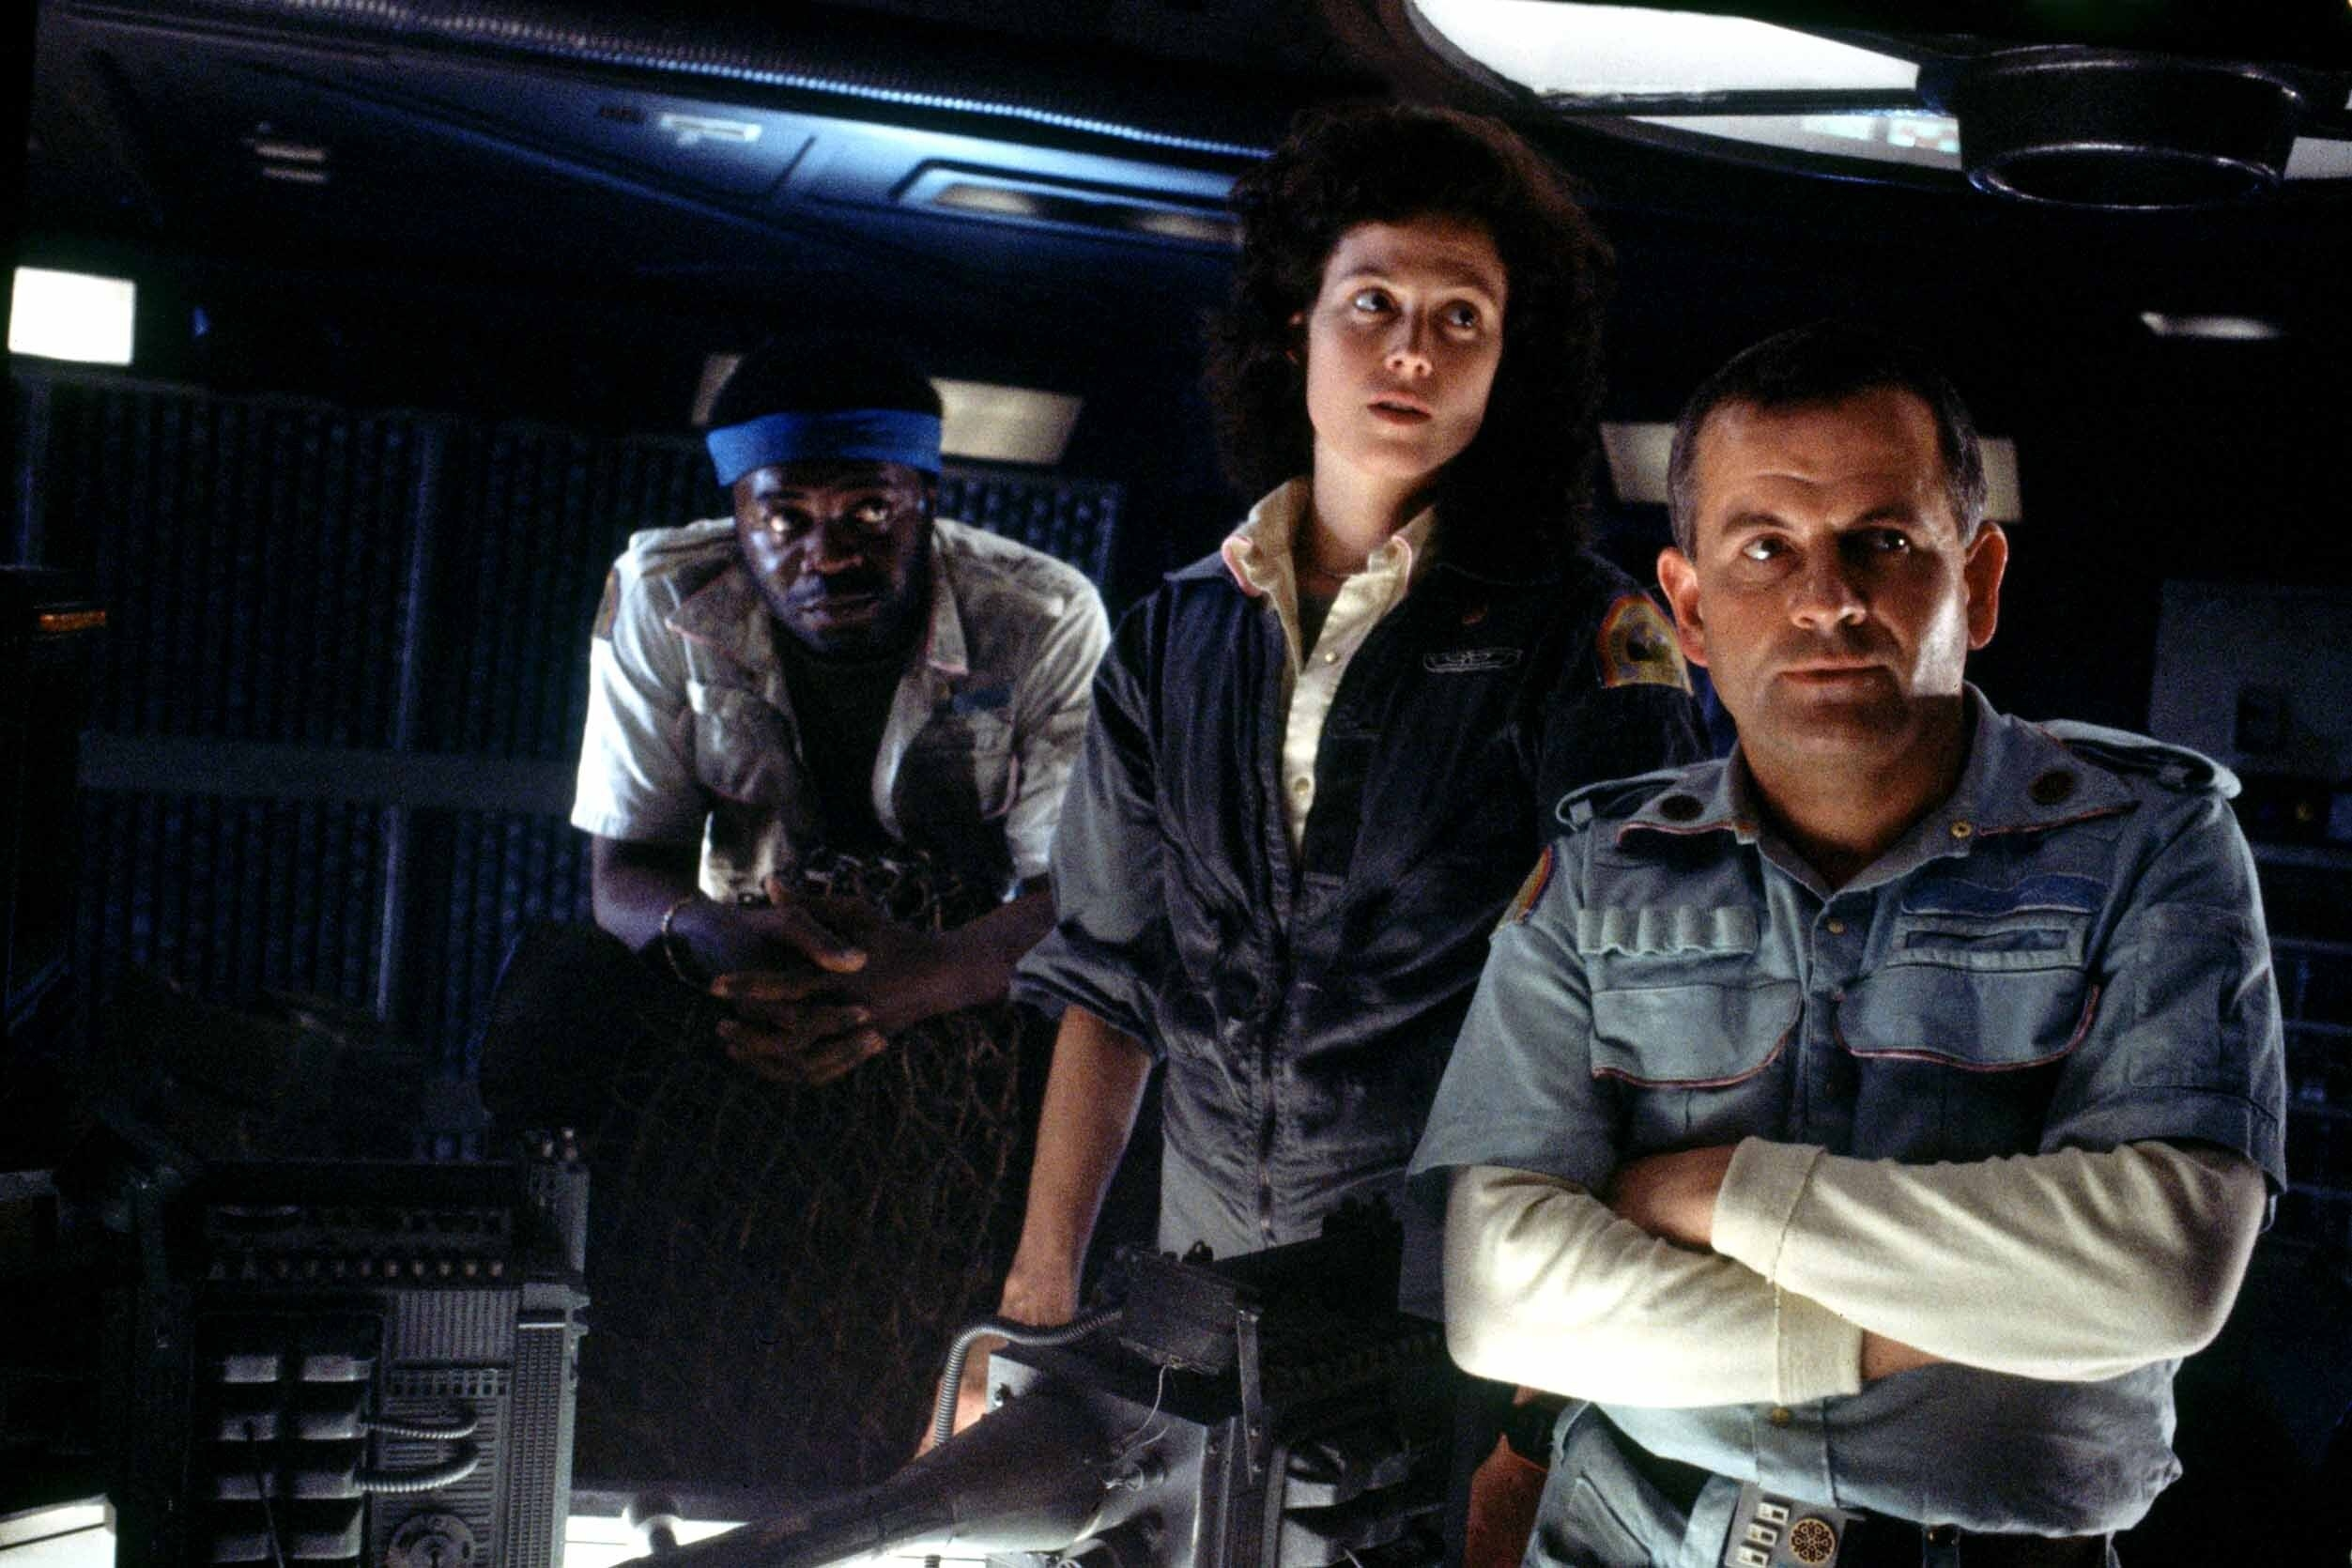 Yaphet Kotto, Sigourney Weaver, and Ian Holm stand in the control room of a space ship